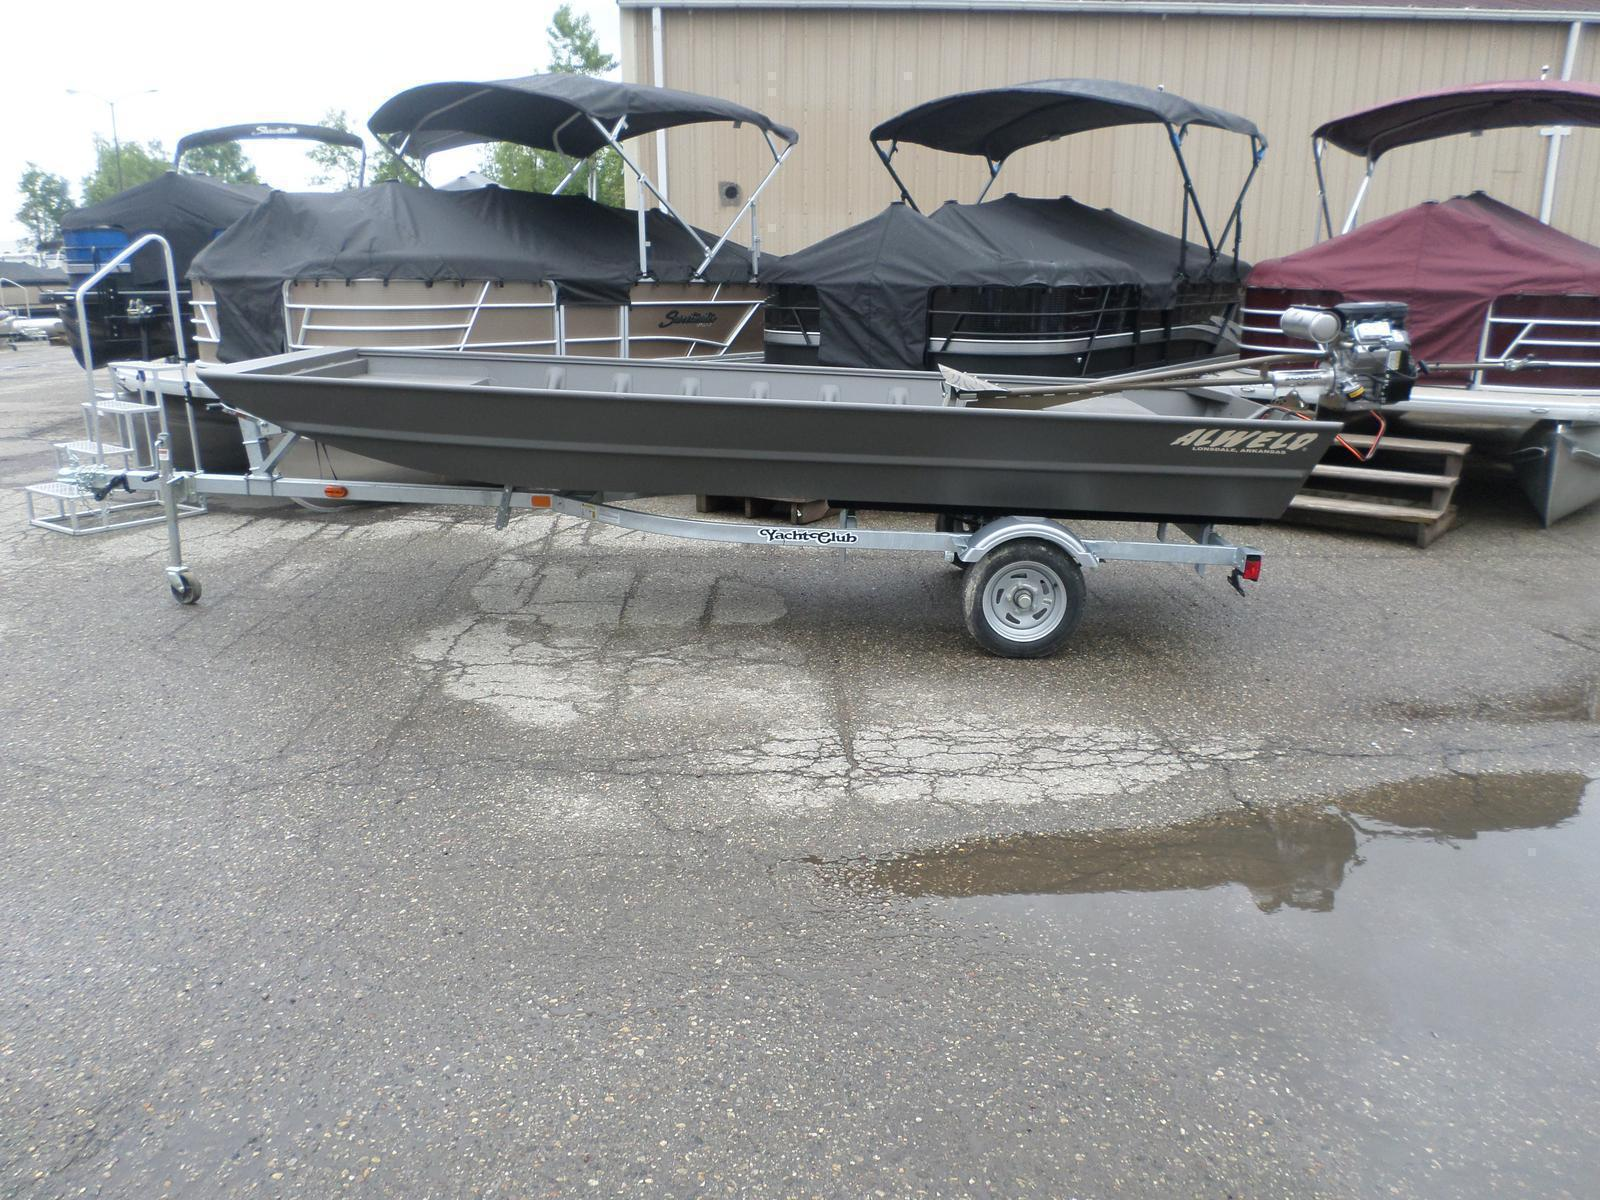 Alweld Boat Price List >> Alweld boats for sale in United States - boats.com